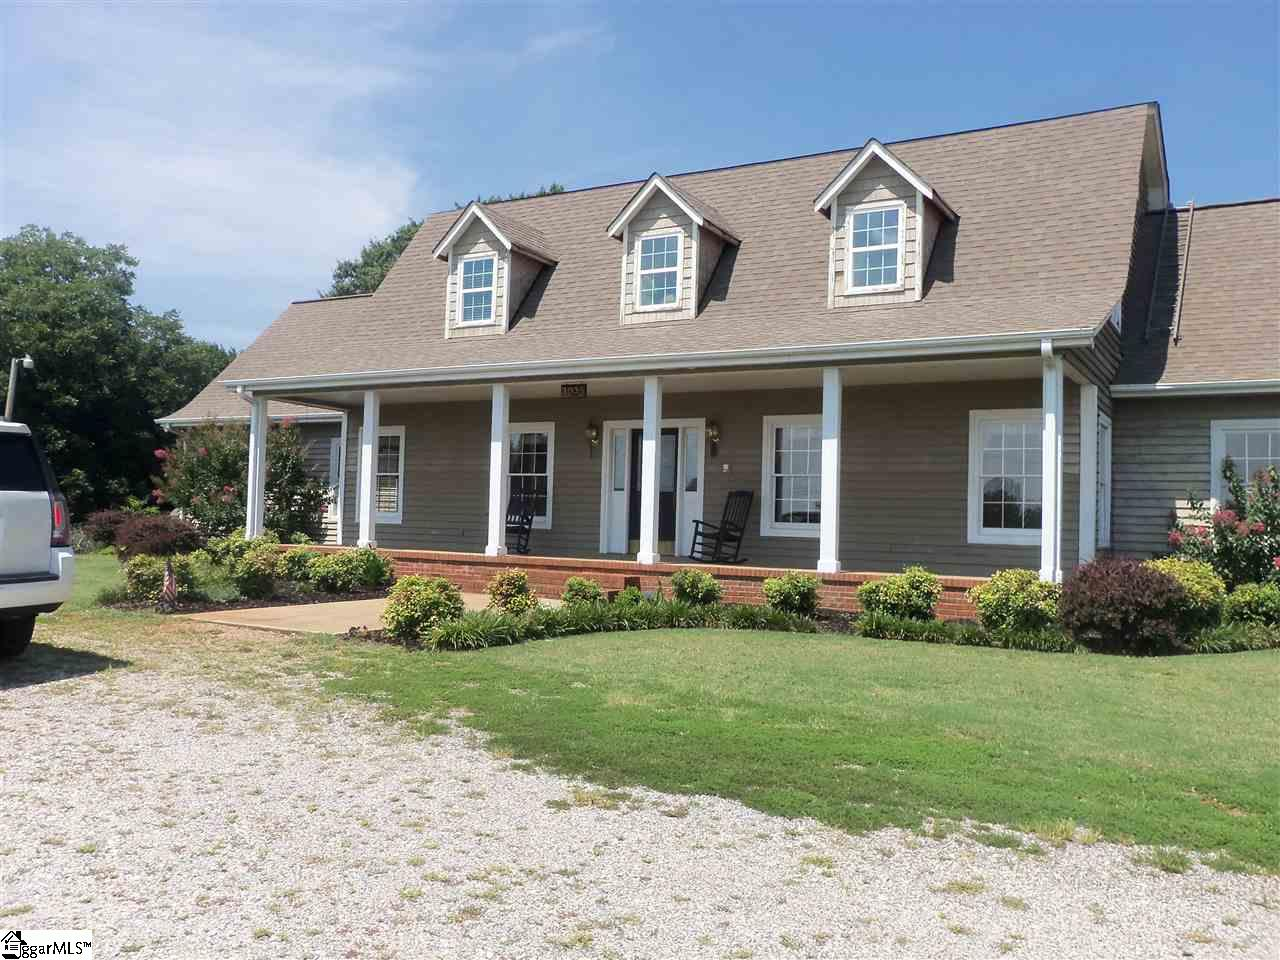 3035 E Gap Creek Road, Greer, SC 29651